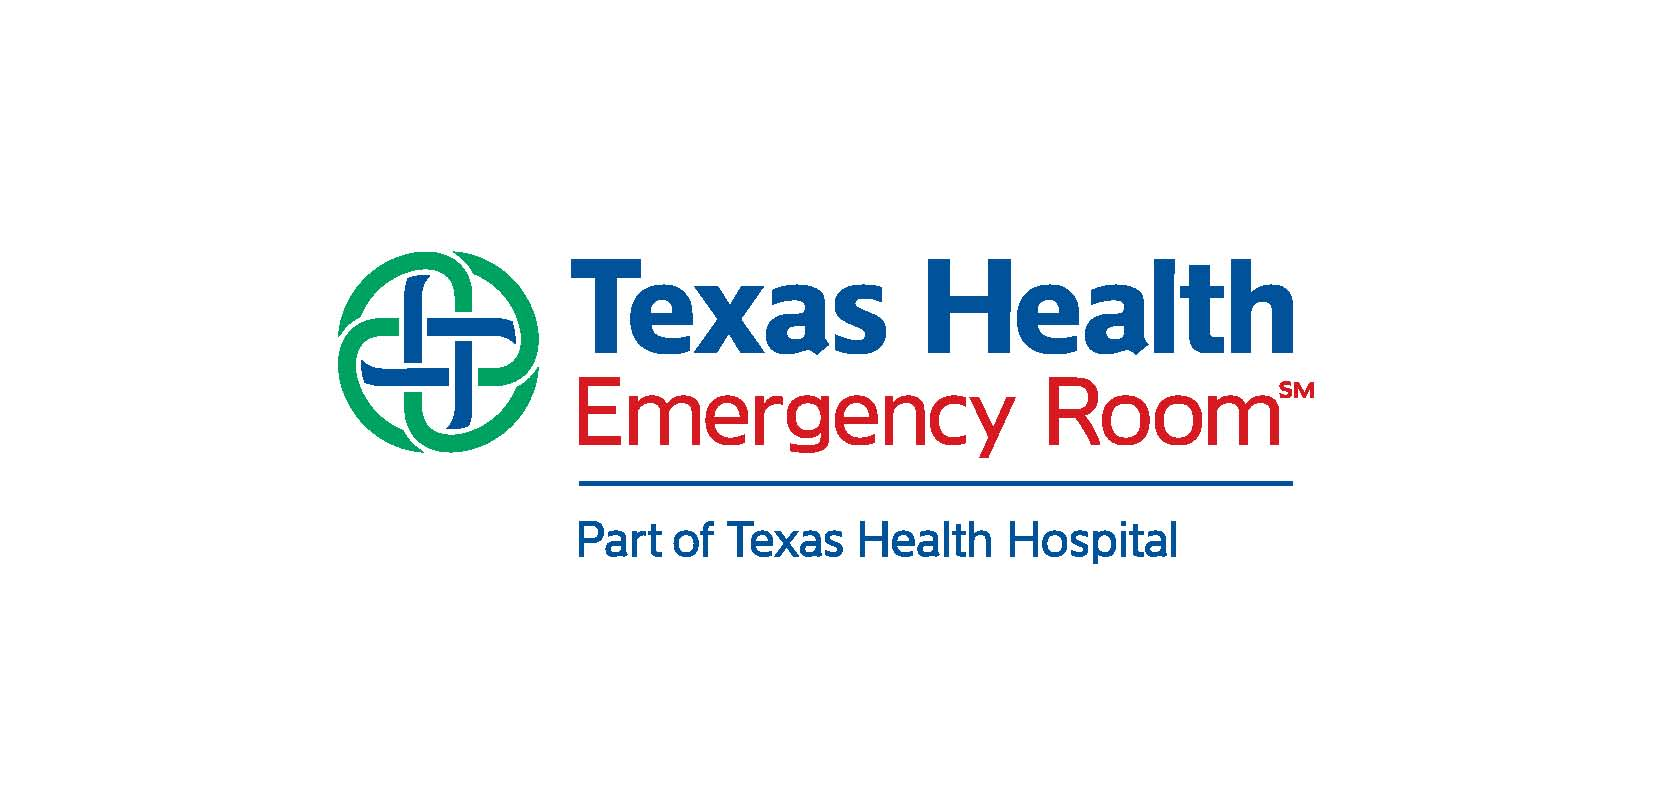 Texas Health Emergency Room To Open New Facility In